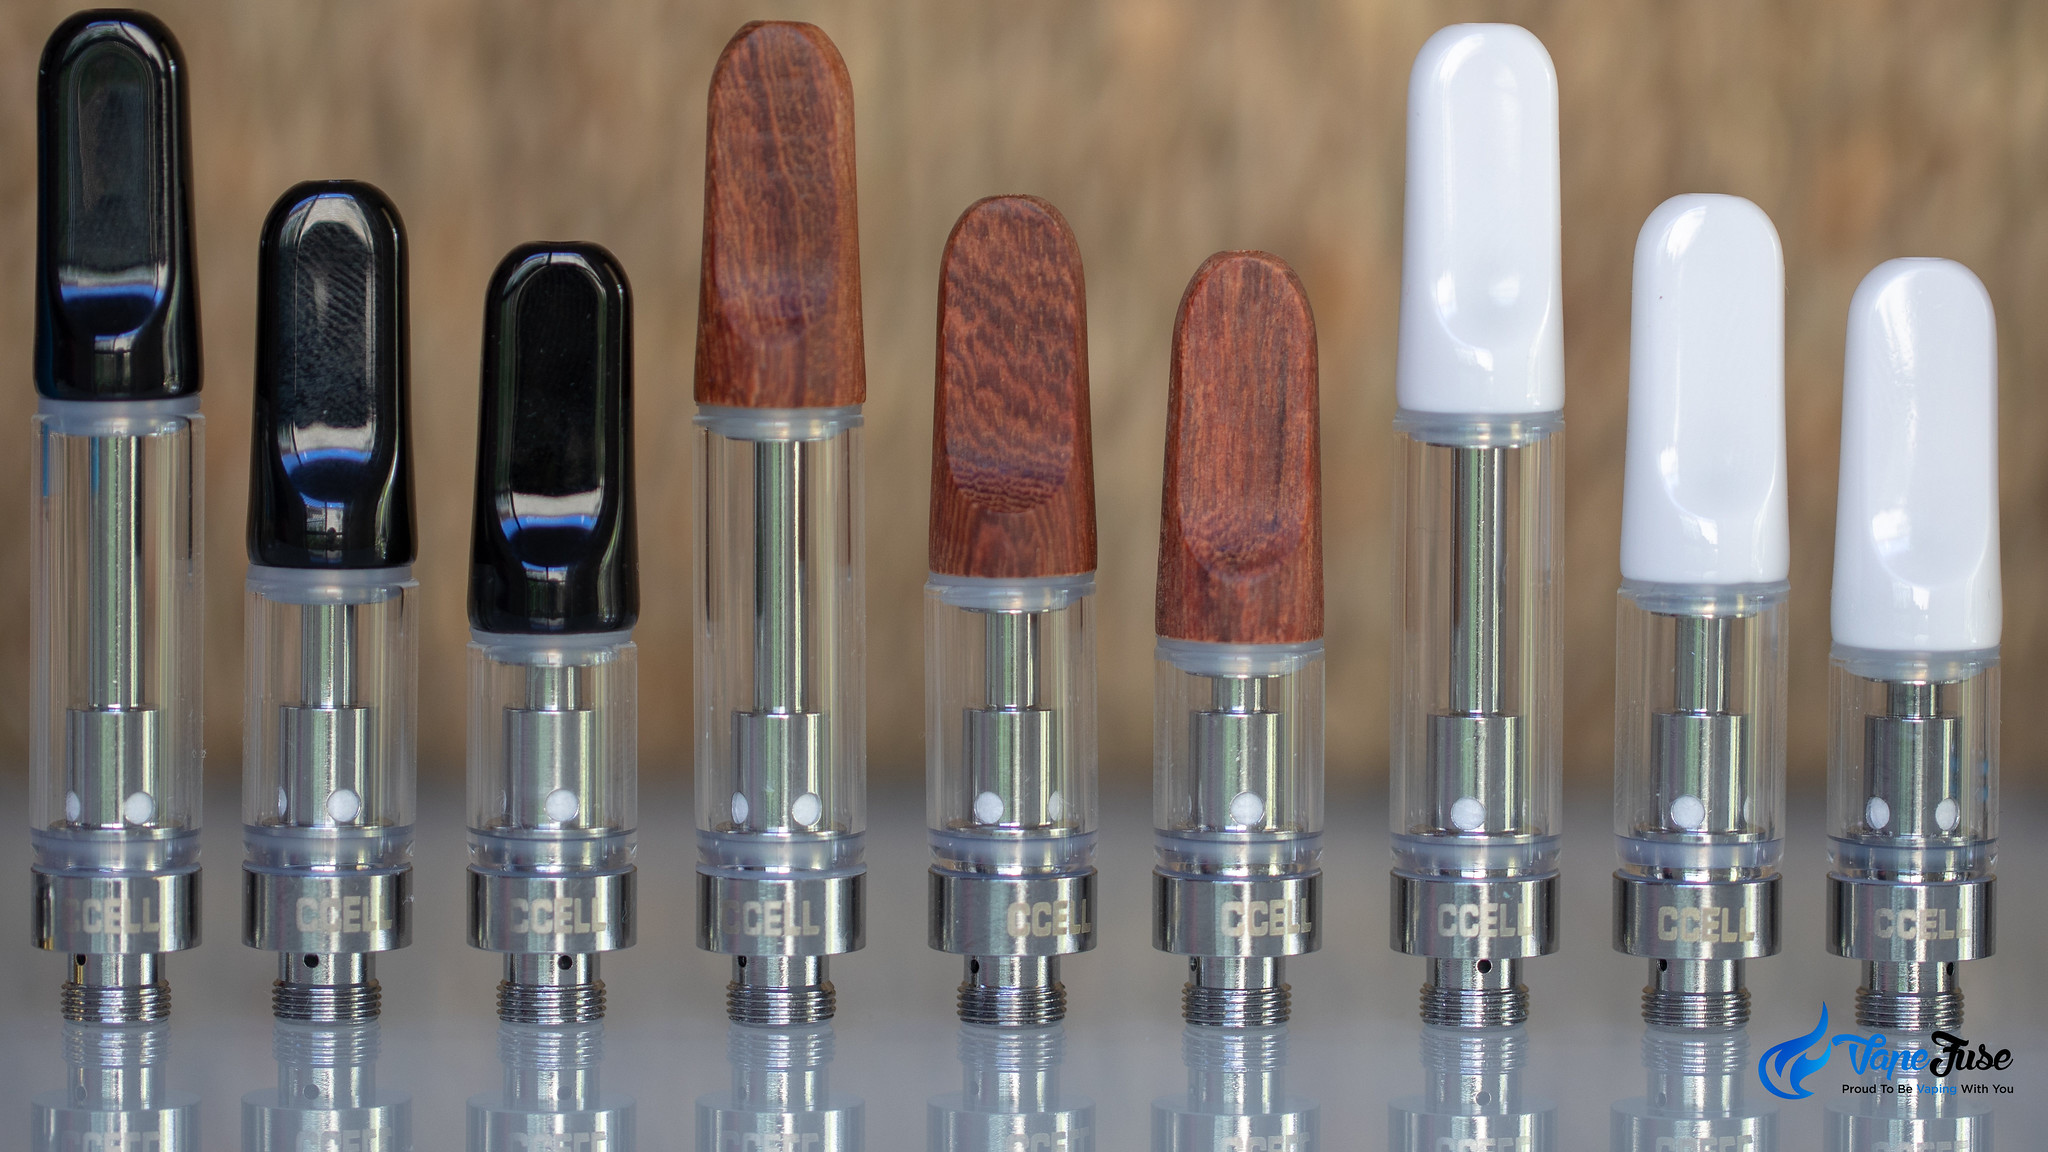 TH2 carts in 3 sizes and 3 sorts of mouthpieces